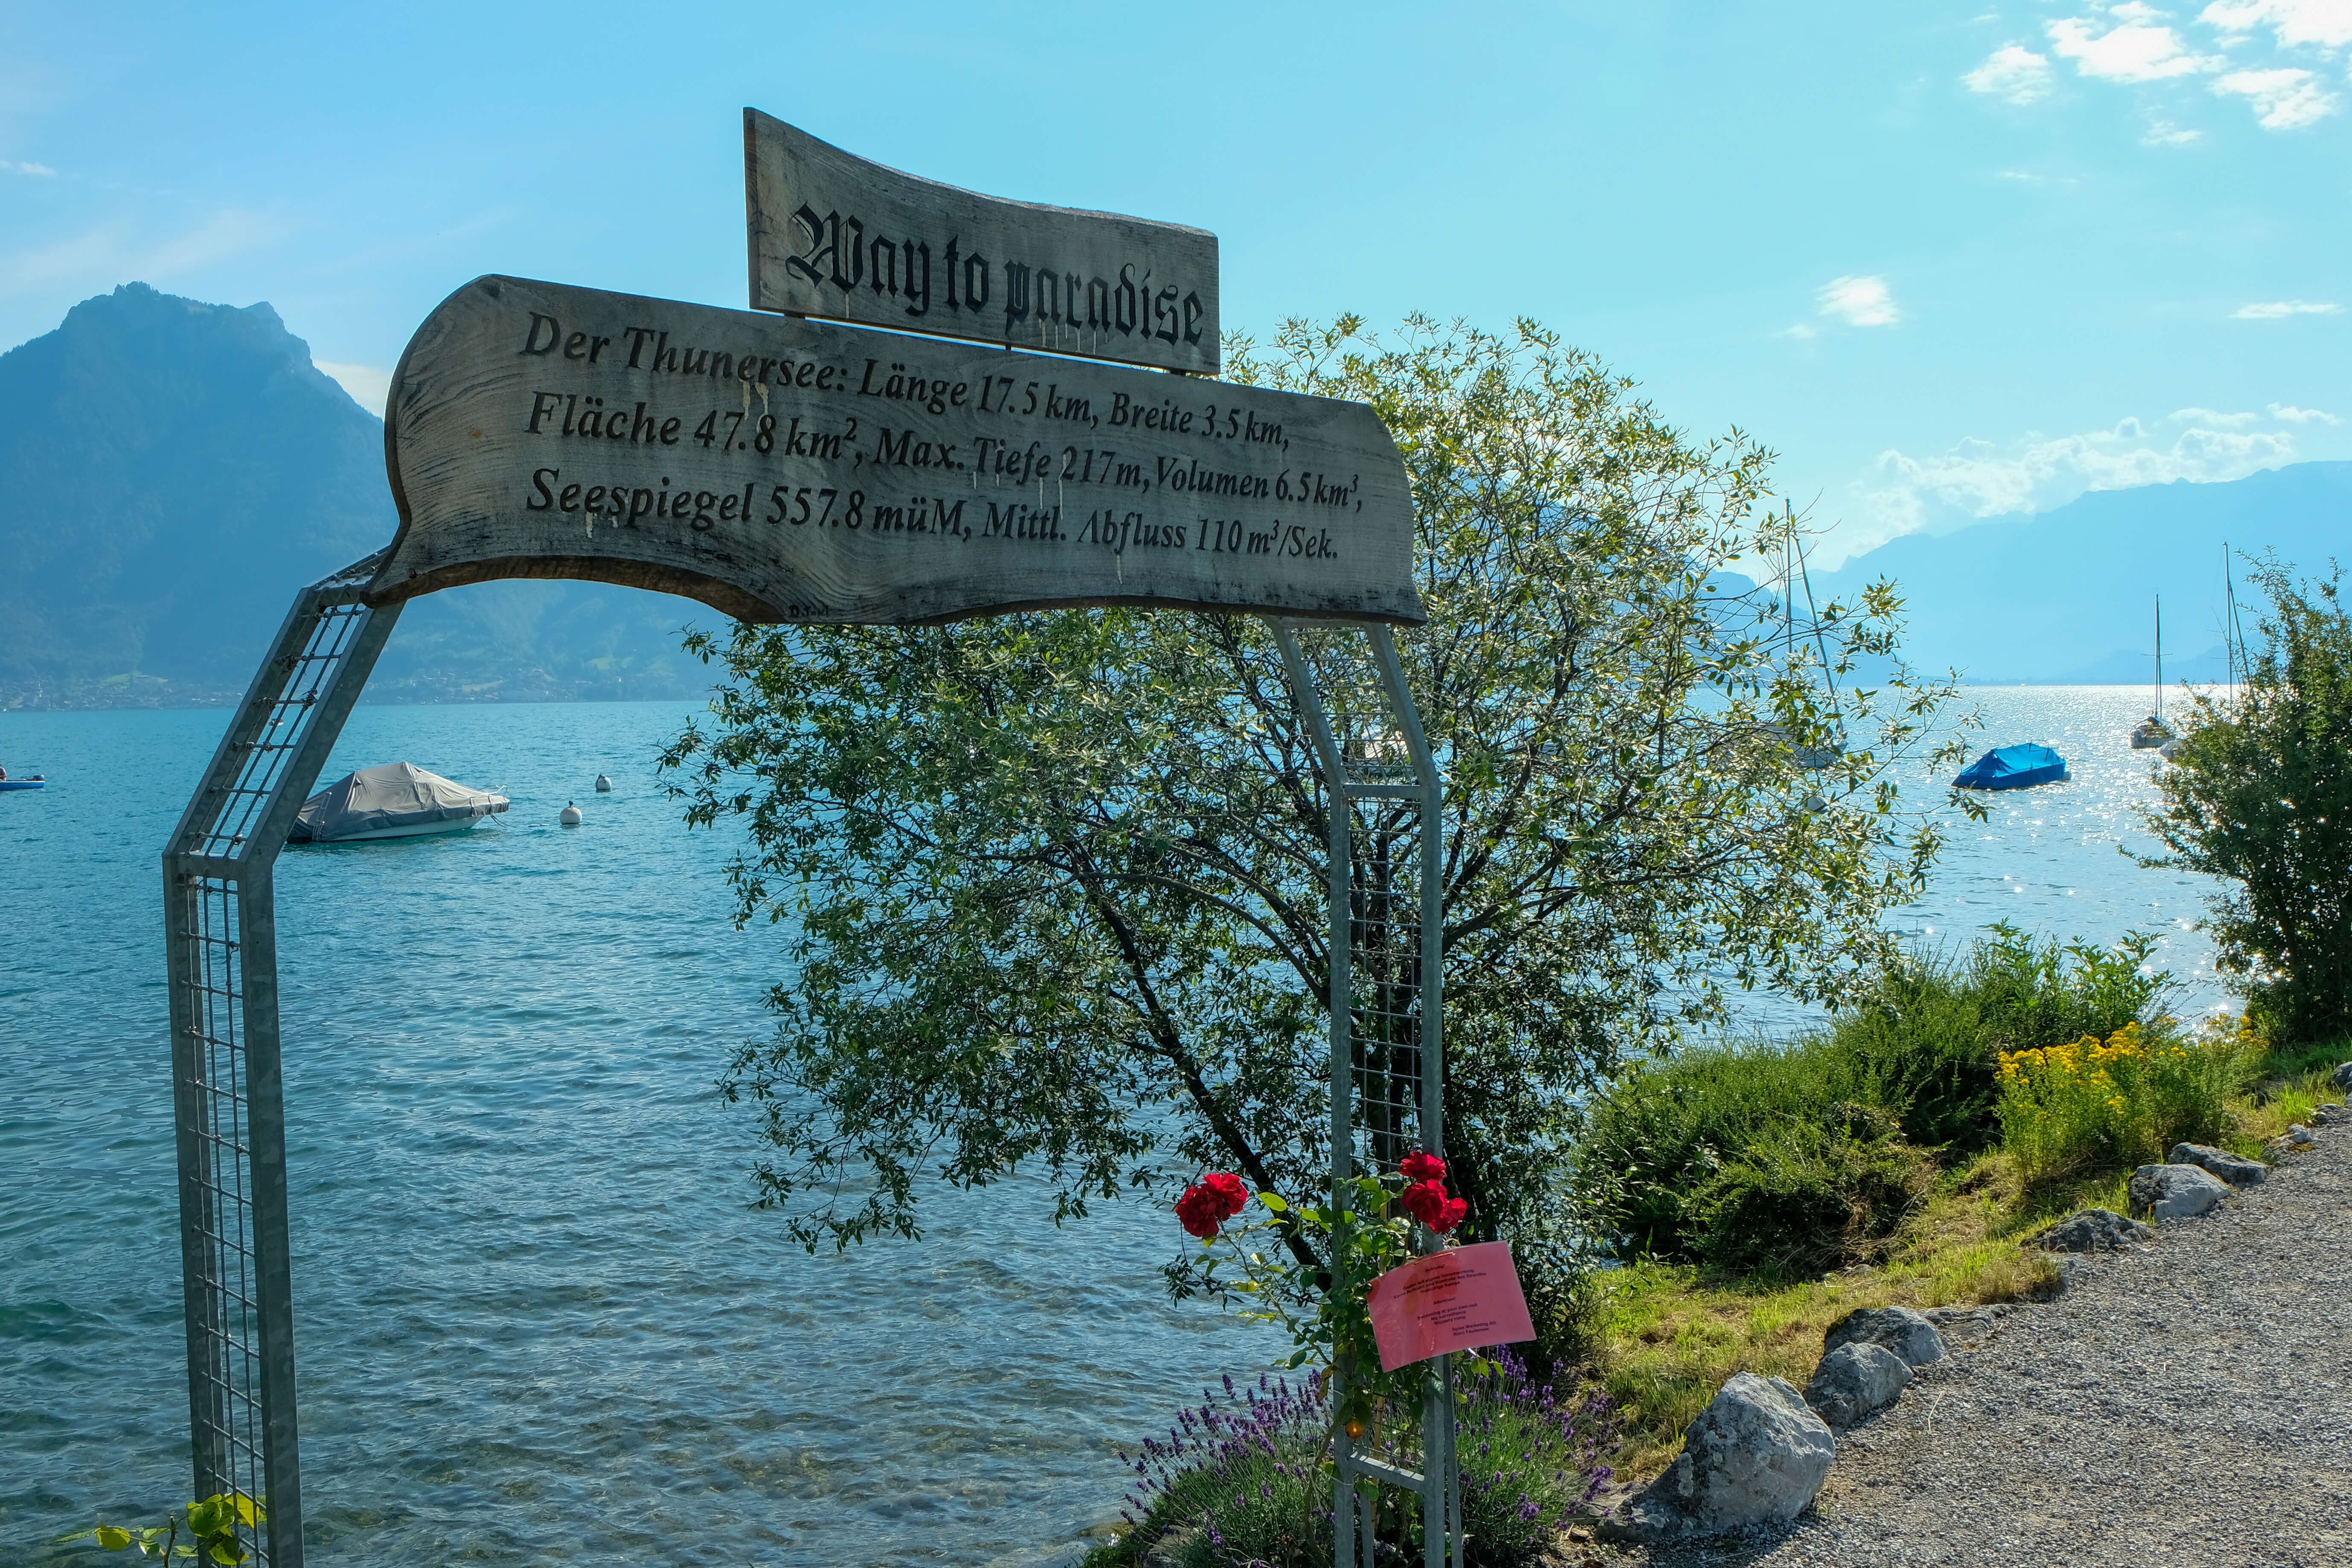 standort-faulensee-way-to-paradise-sommer-faulensee.jpg